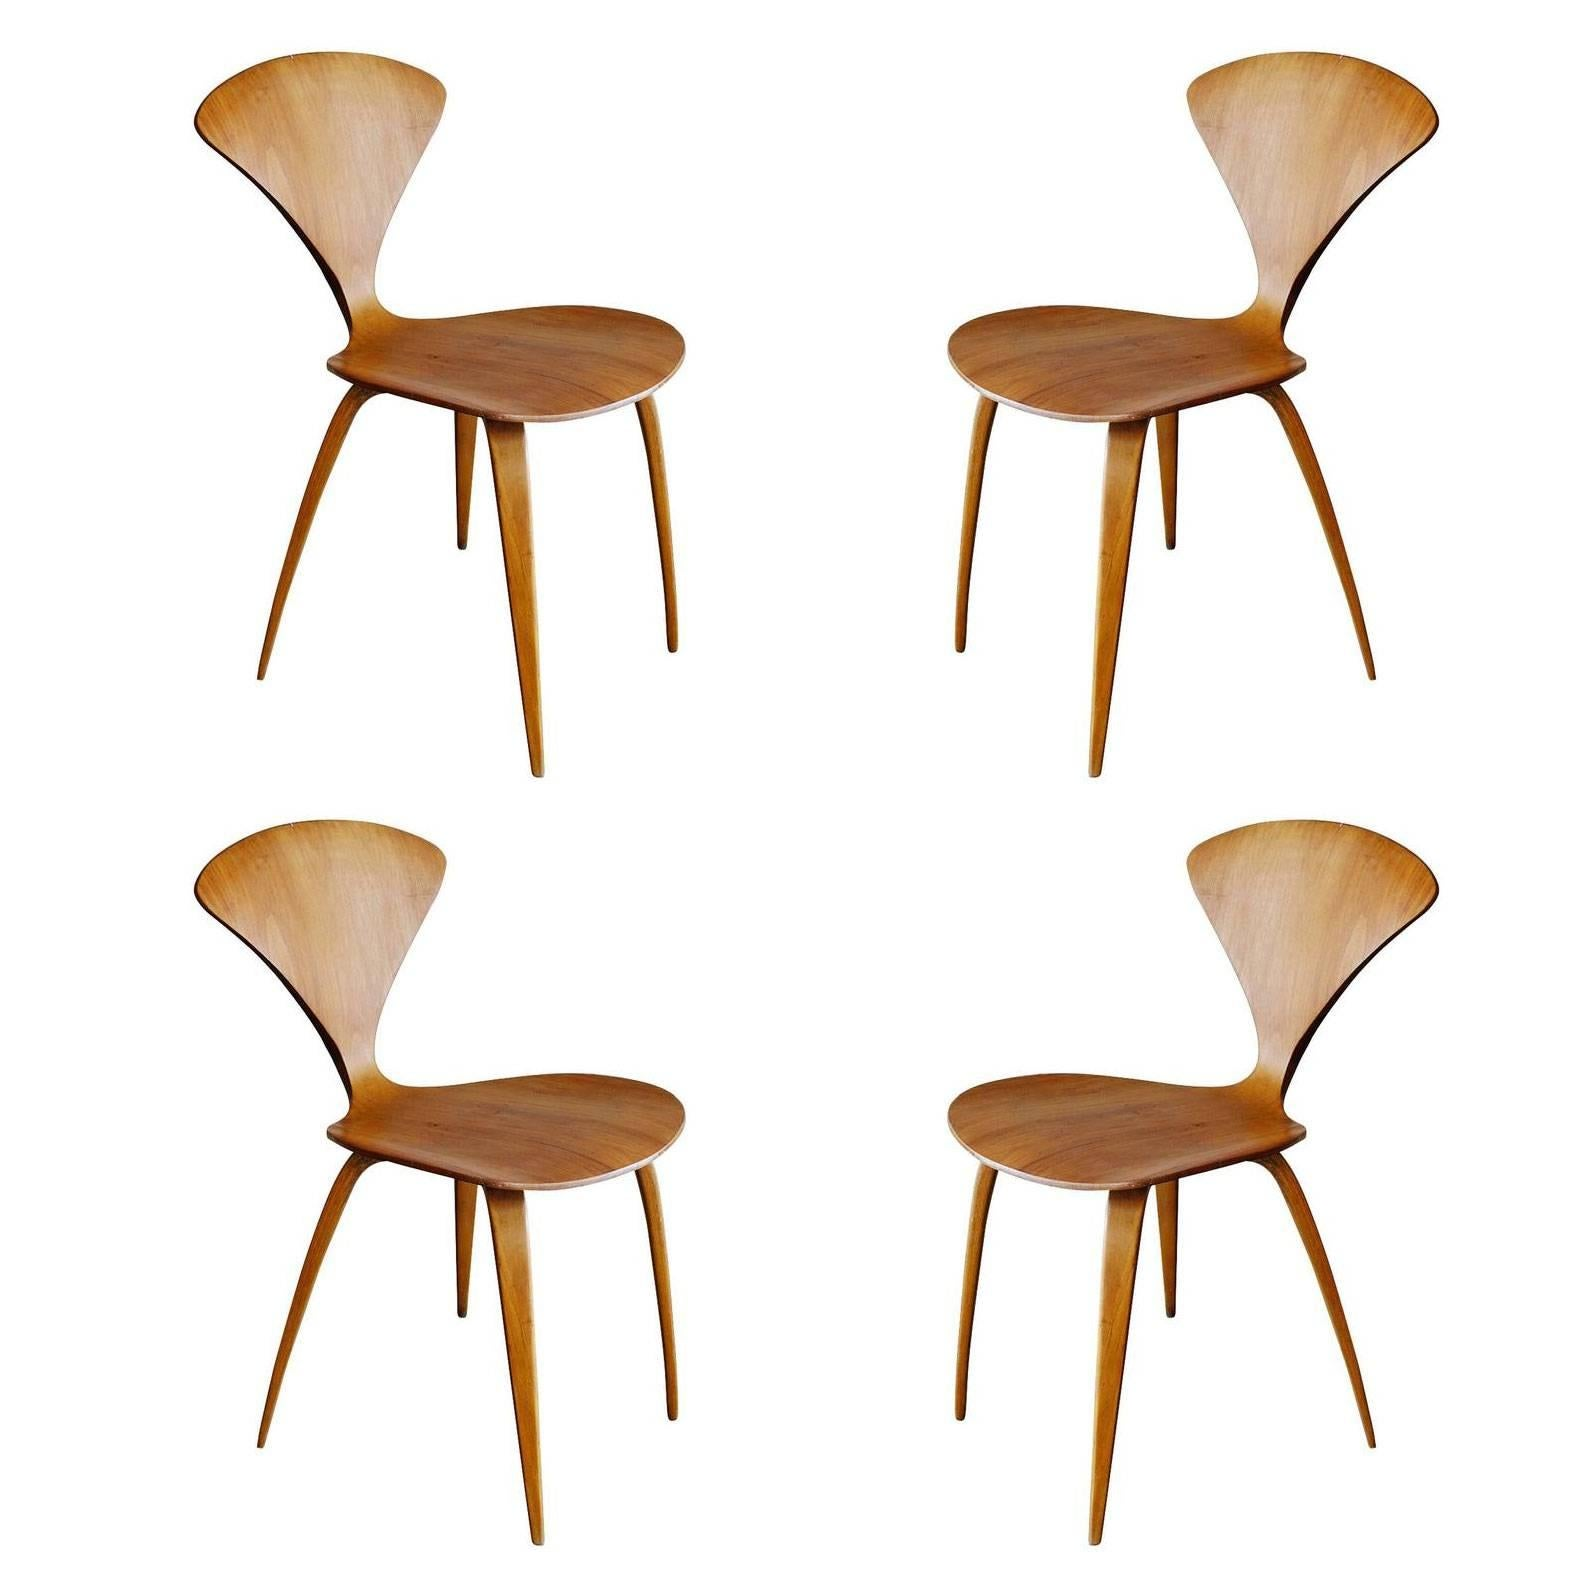 Norman Cherner Side Chairs - 7 For Sale at 1stdibs